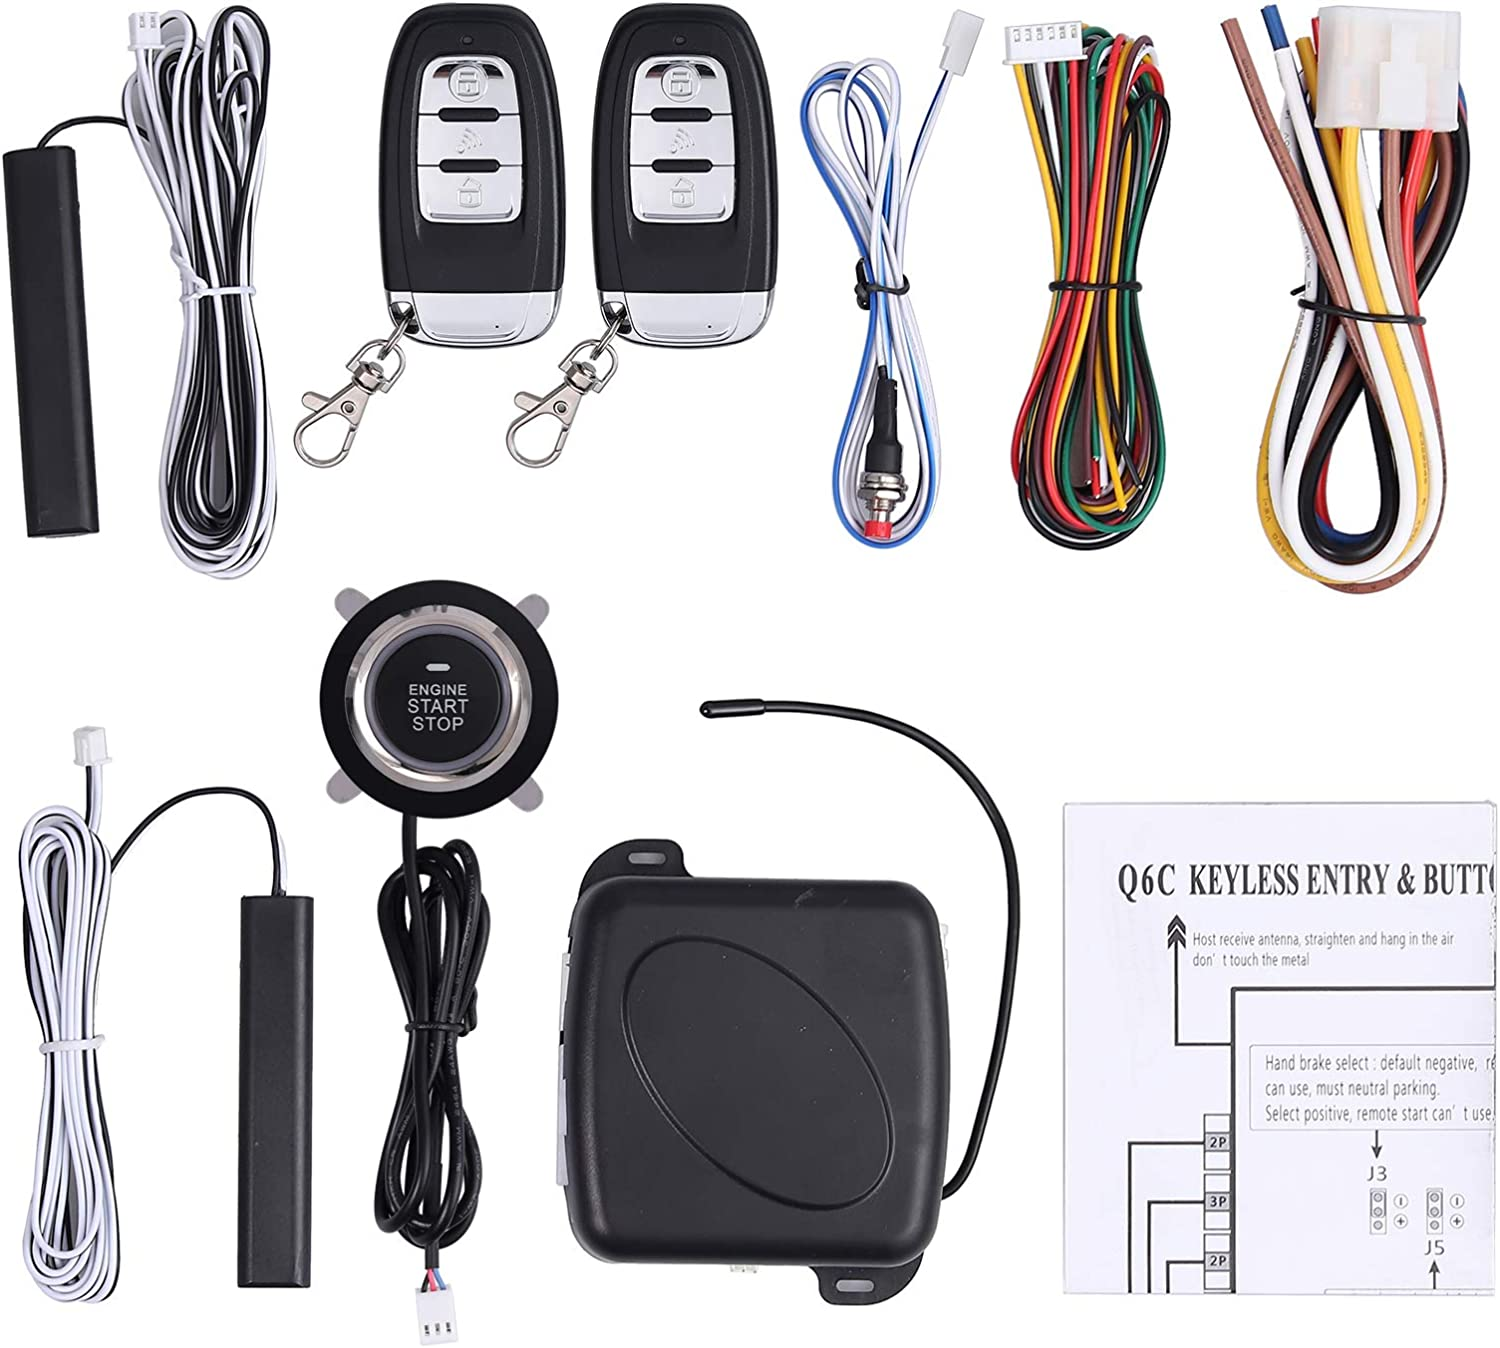 NovelBee 12V Smart Start System,Car Anti-Thief RFID Immobilizer Lock System with Keyless Go Engine Start or Stop Push Button